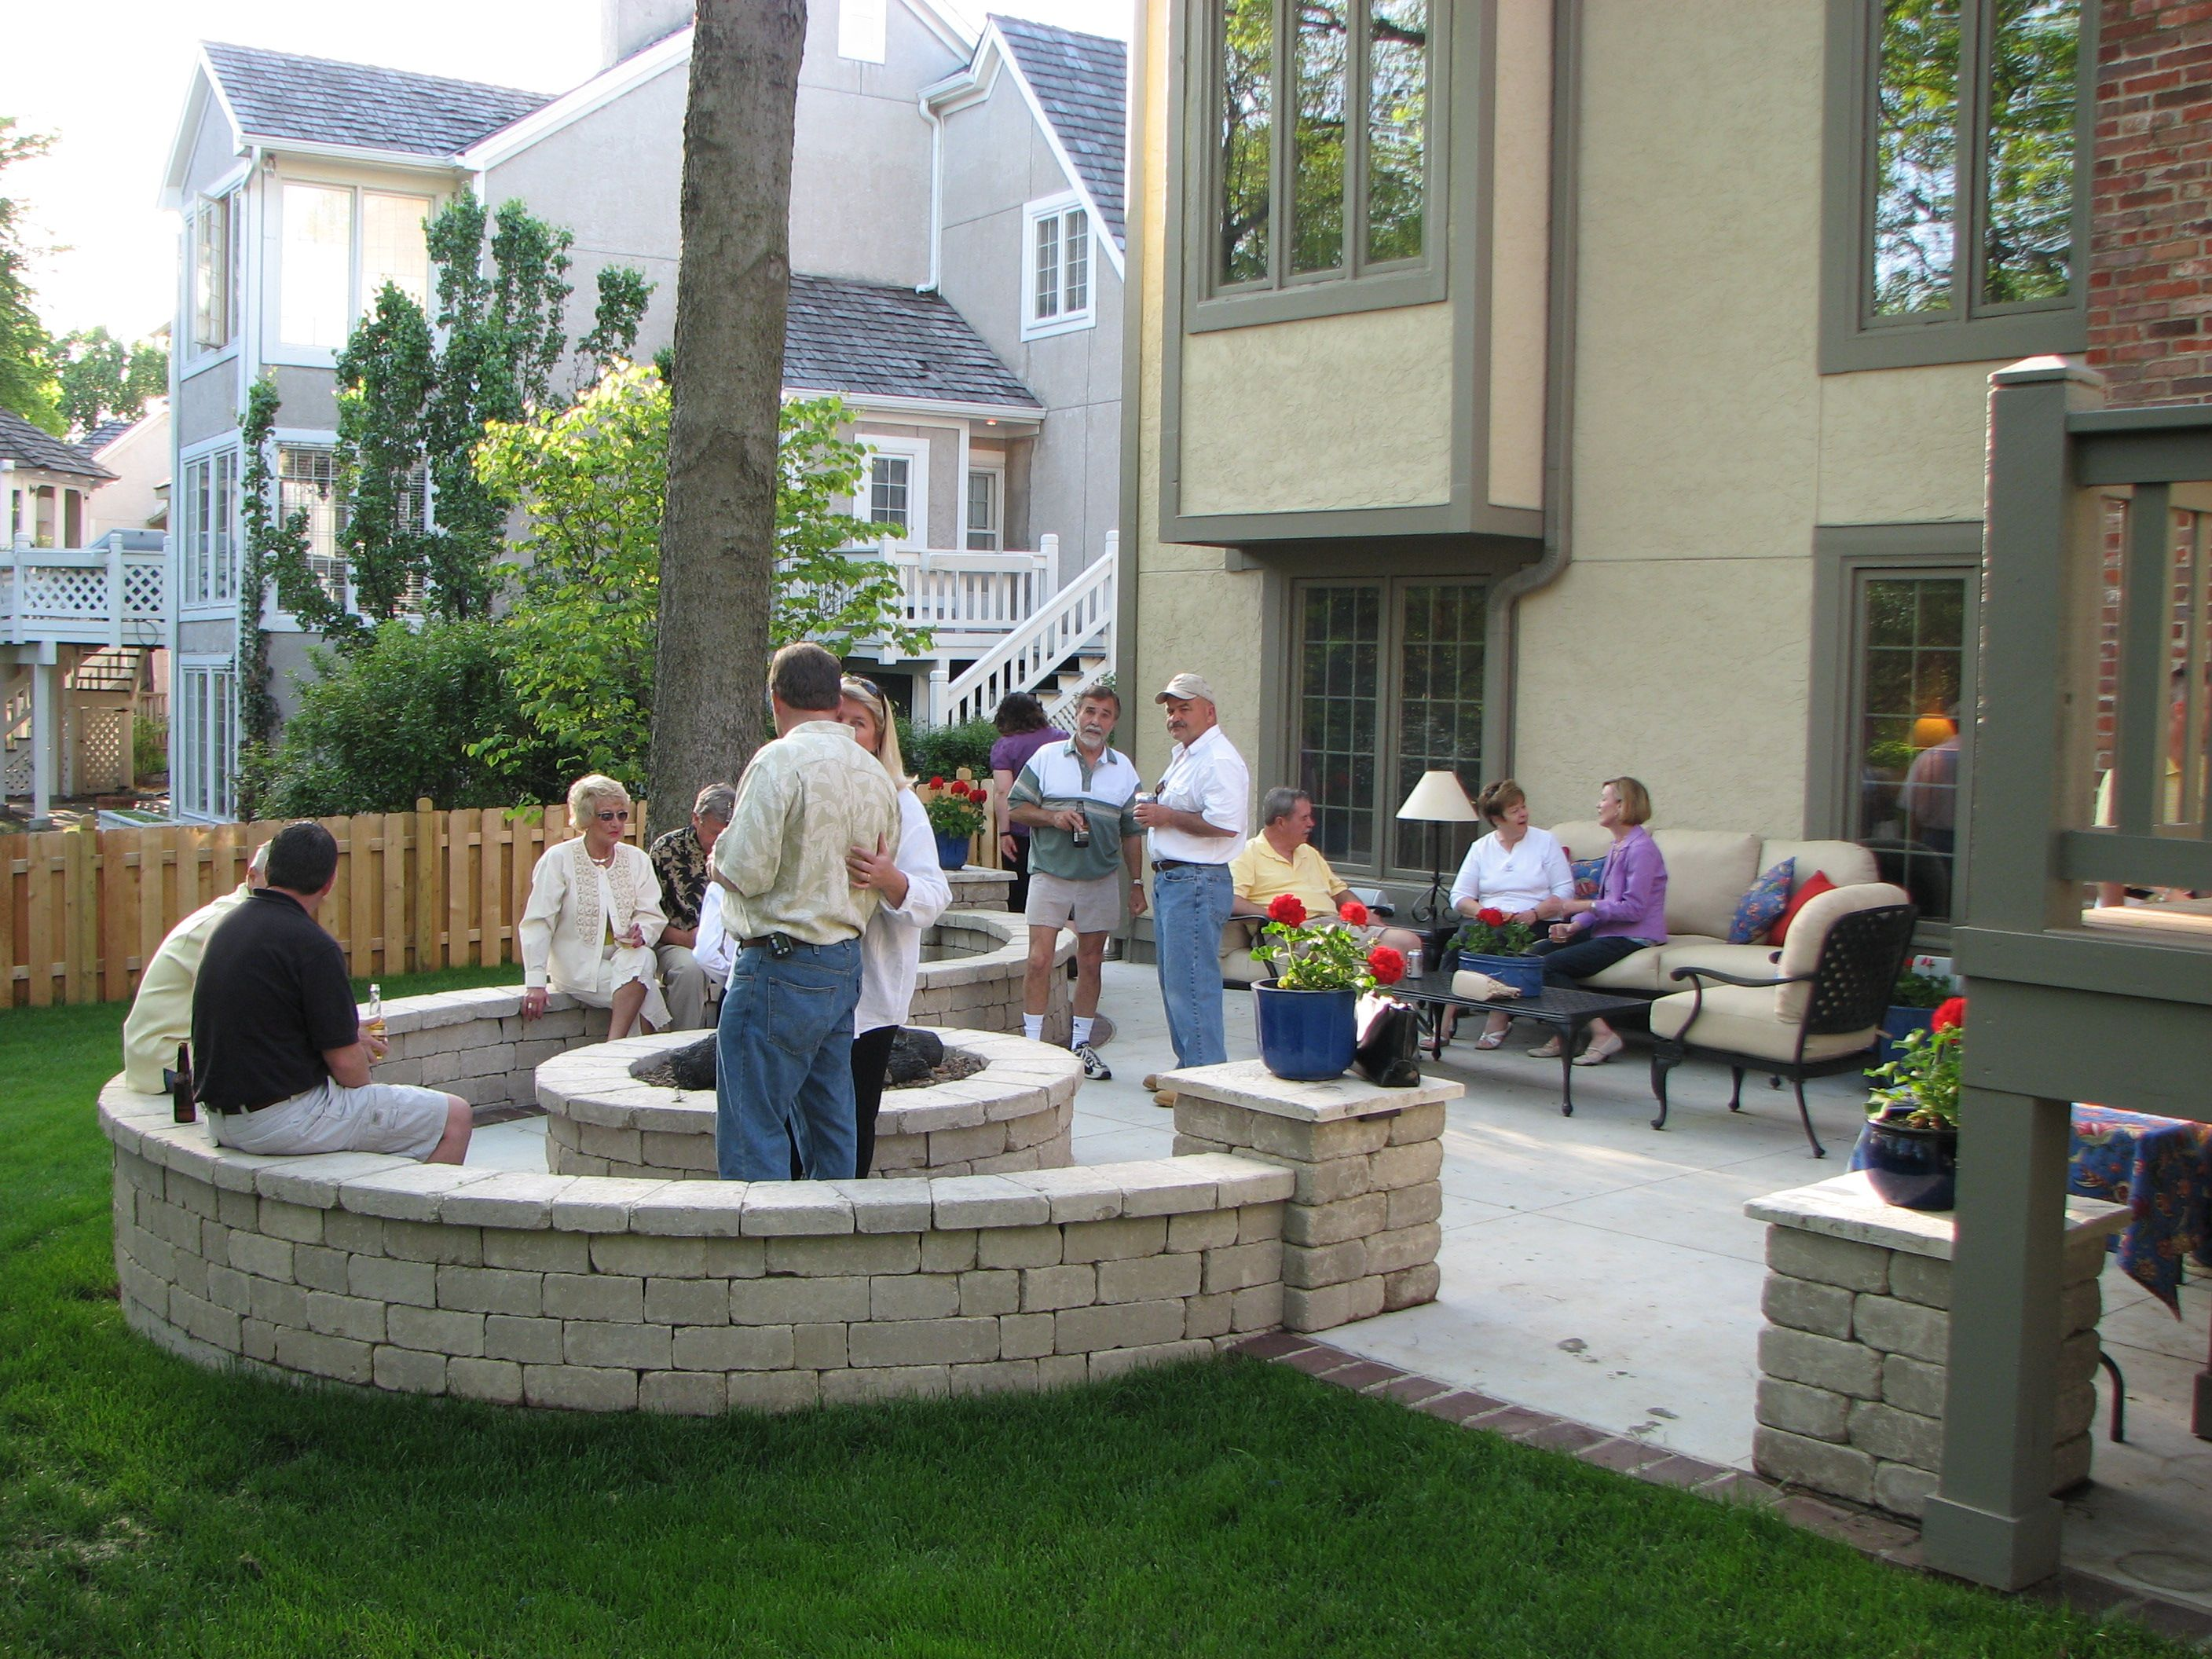 Party on a newly finished outdoor living space Columns seat